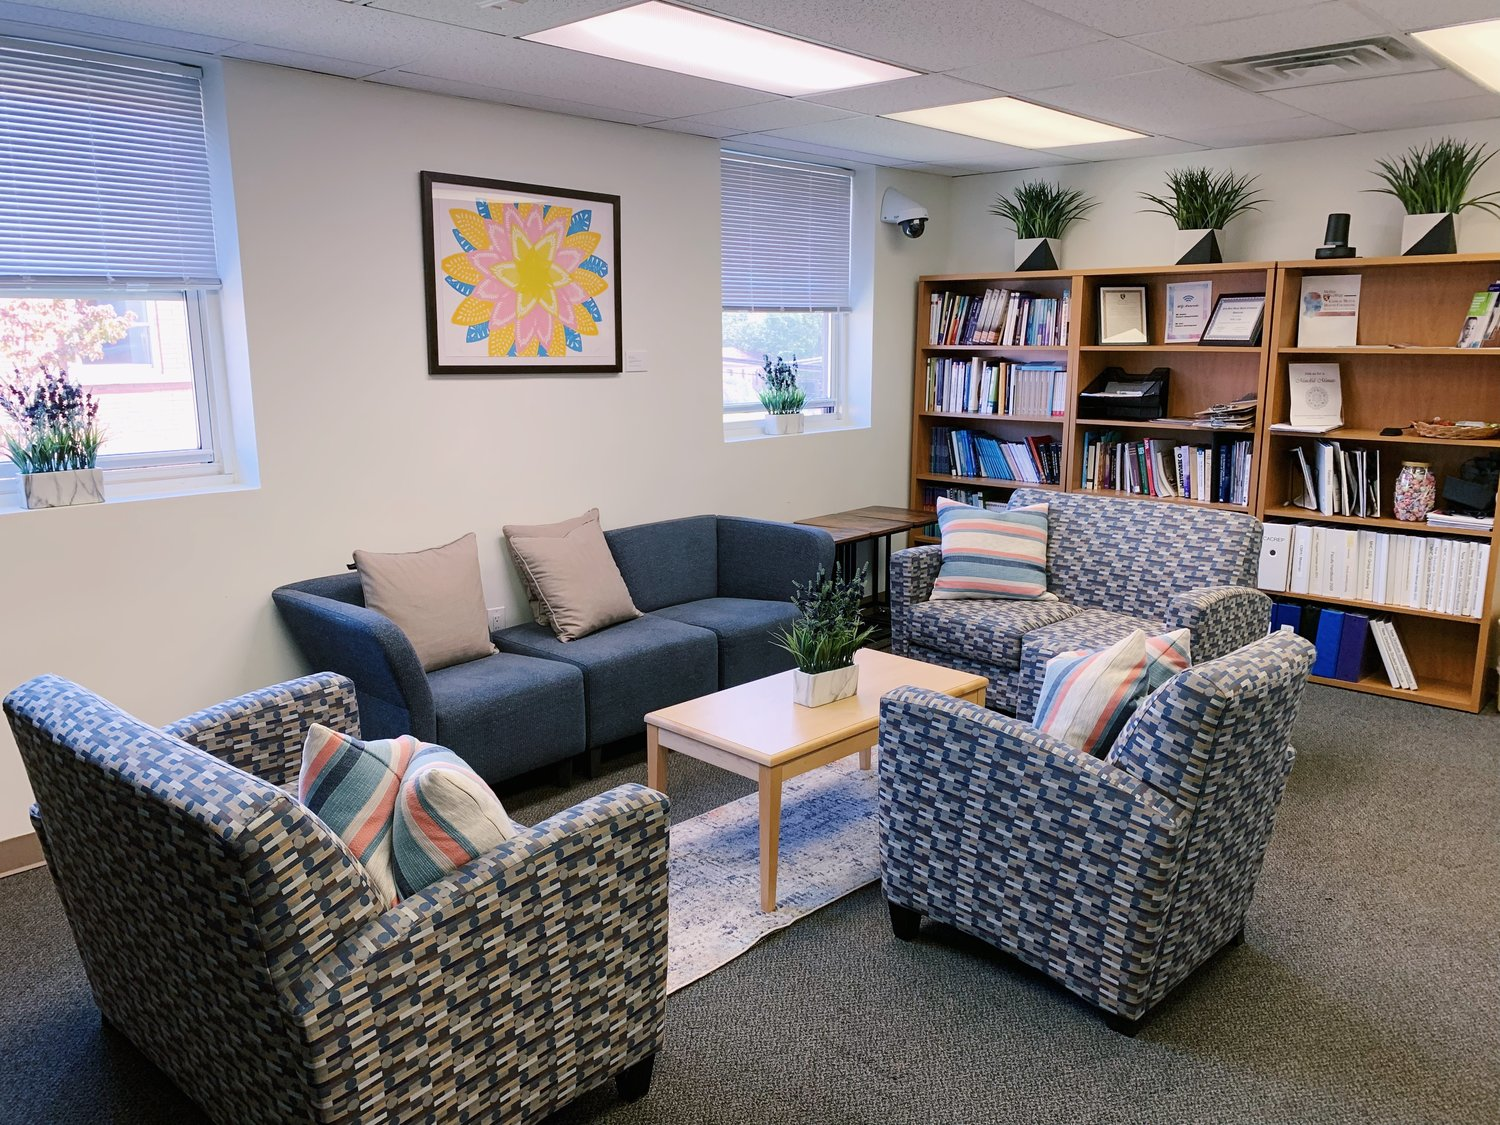 Though Molloy College's Mental Health and Wellness Center is not seeing patients in person at this time, it offers tele-mental health services.